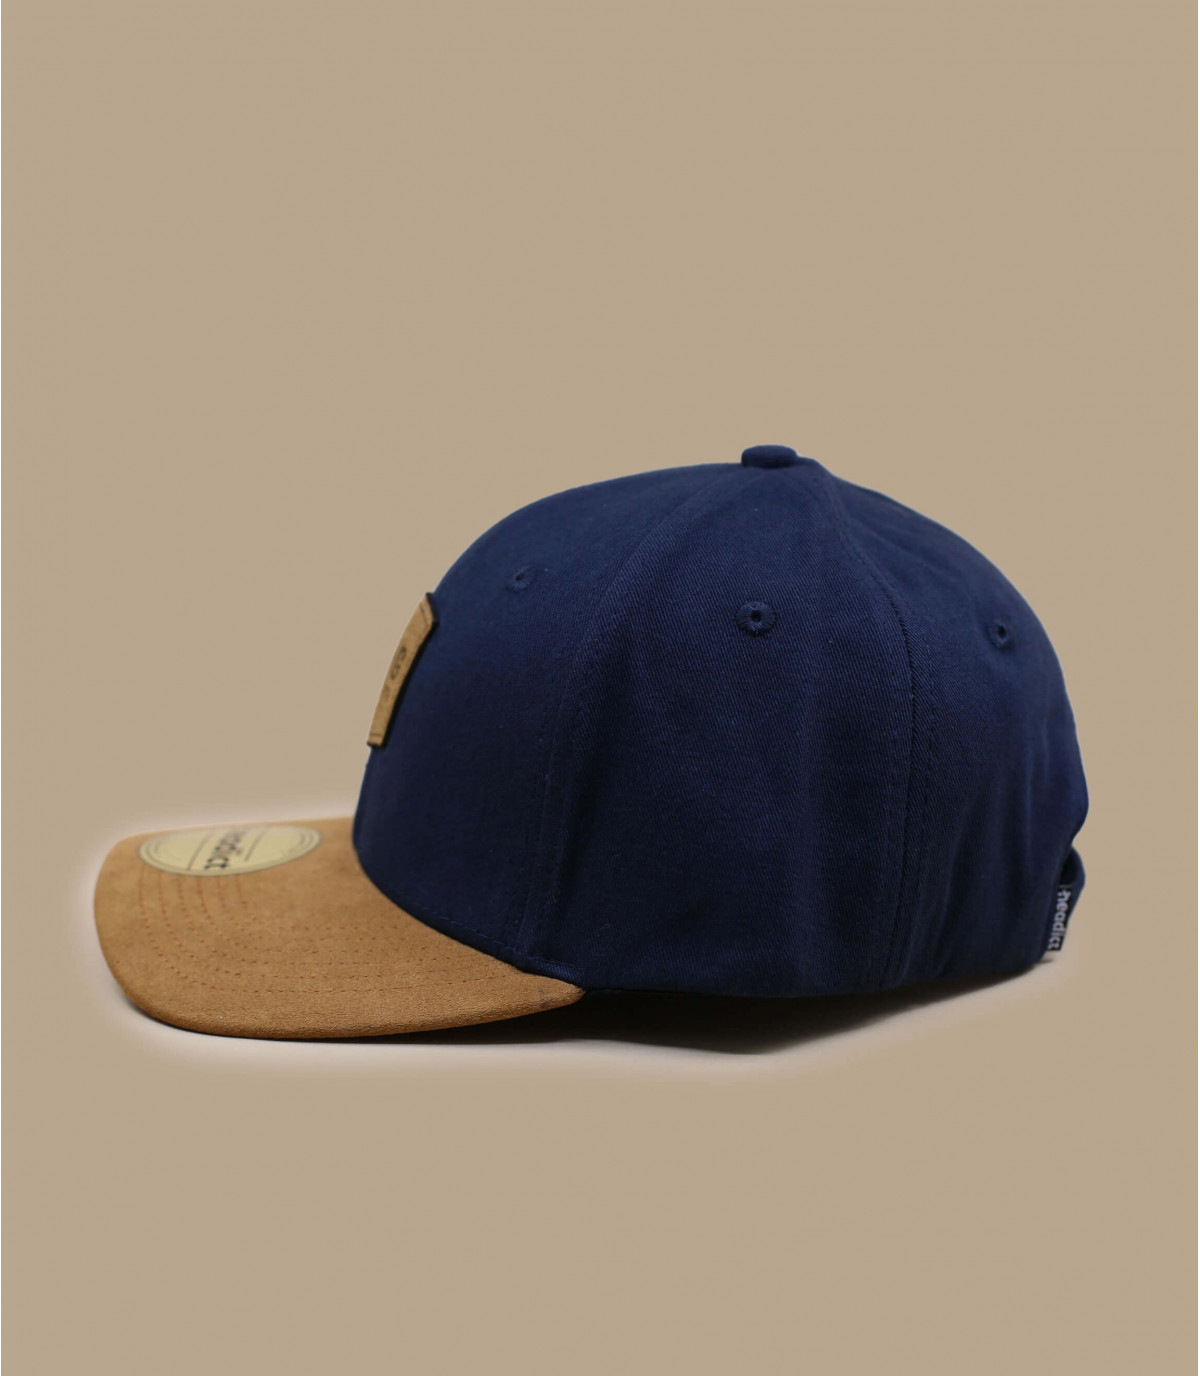 Details Curve King of the North navy brown - Abbildung 3